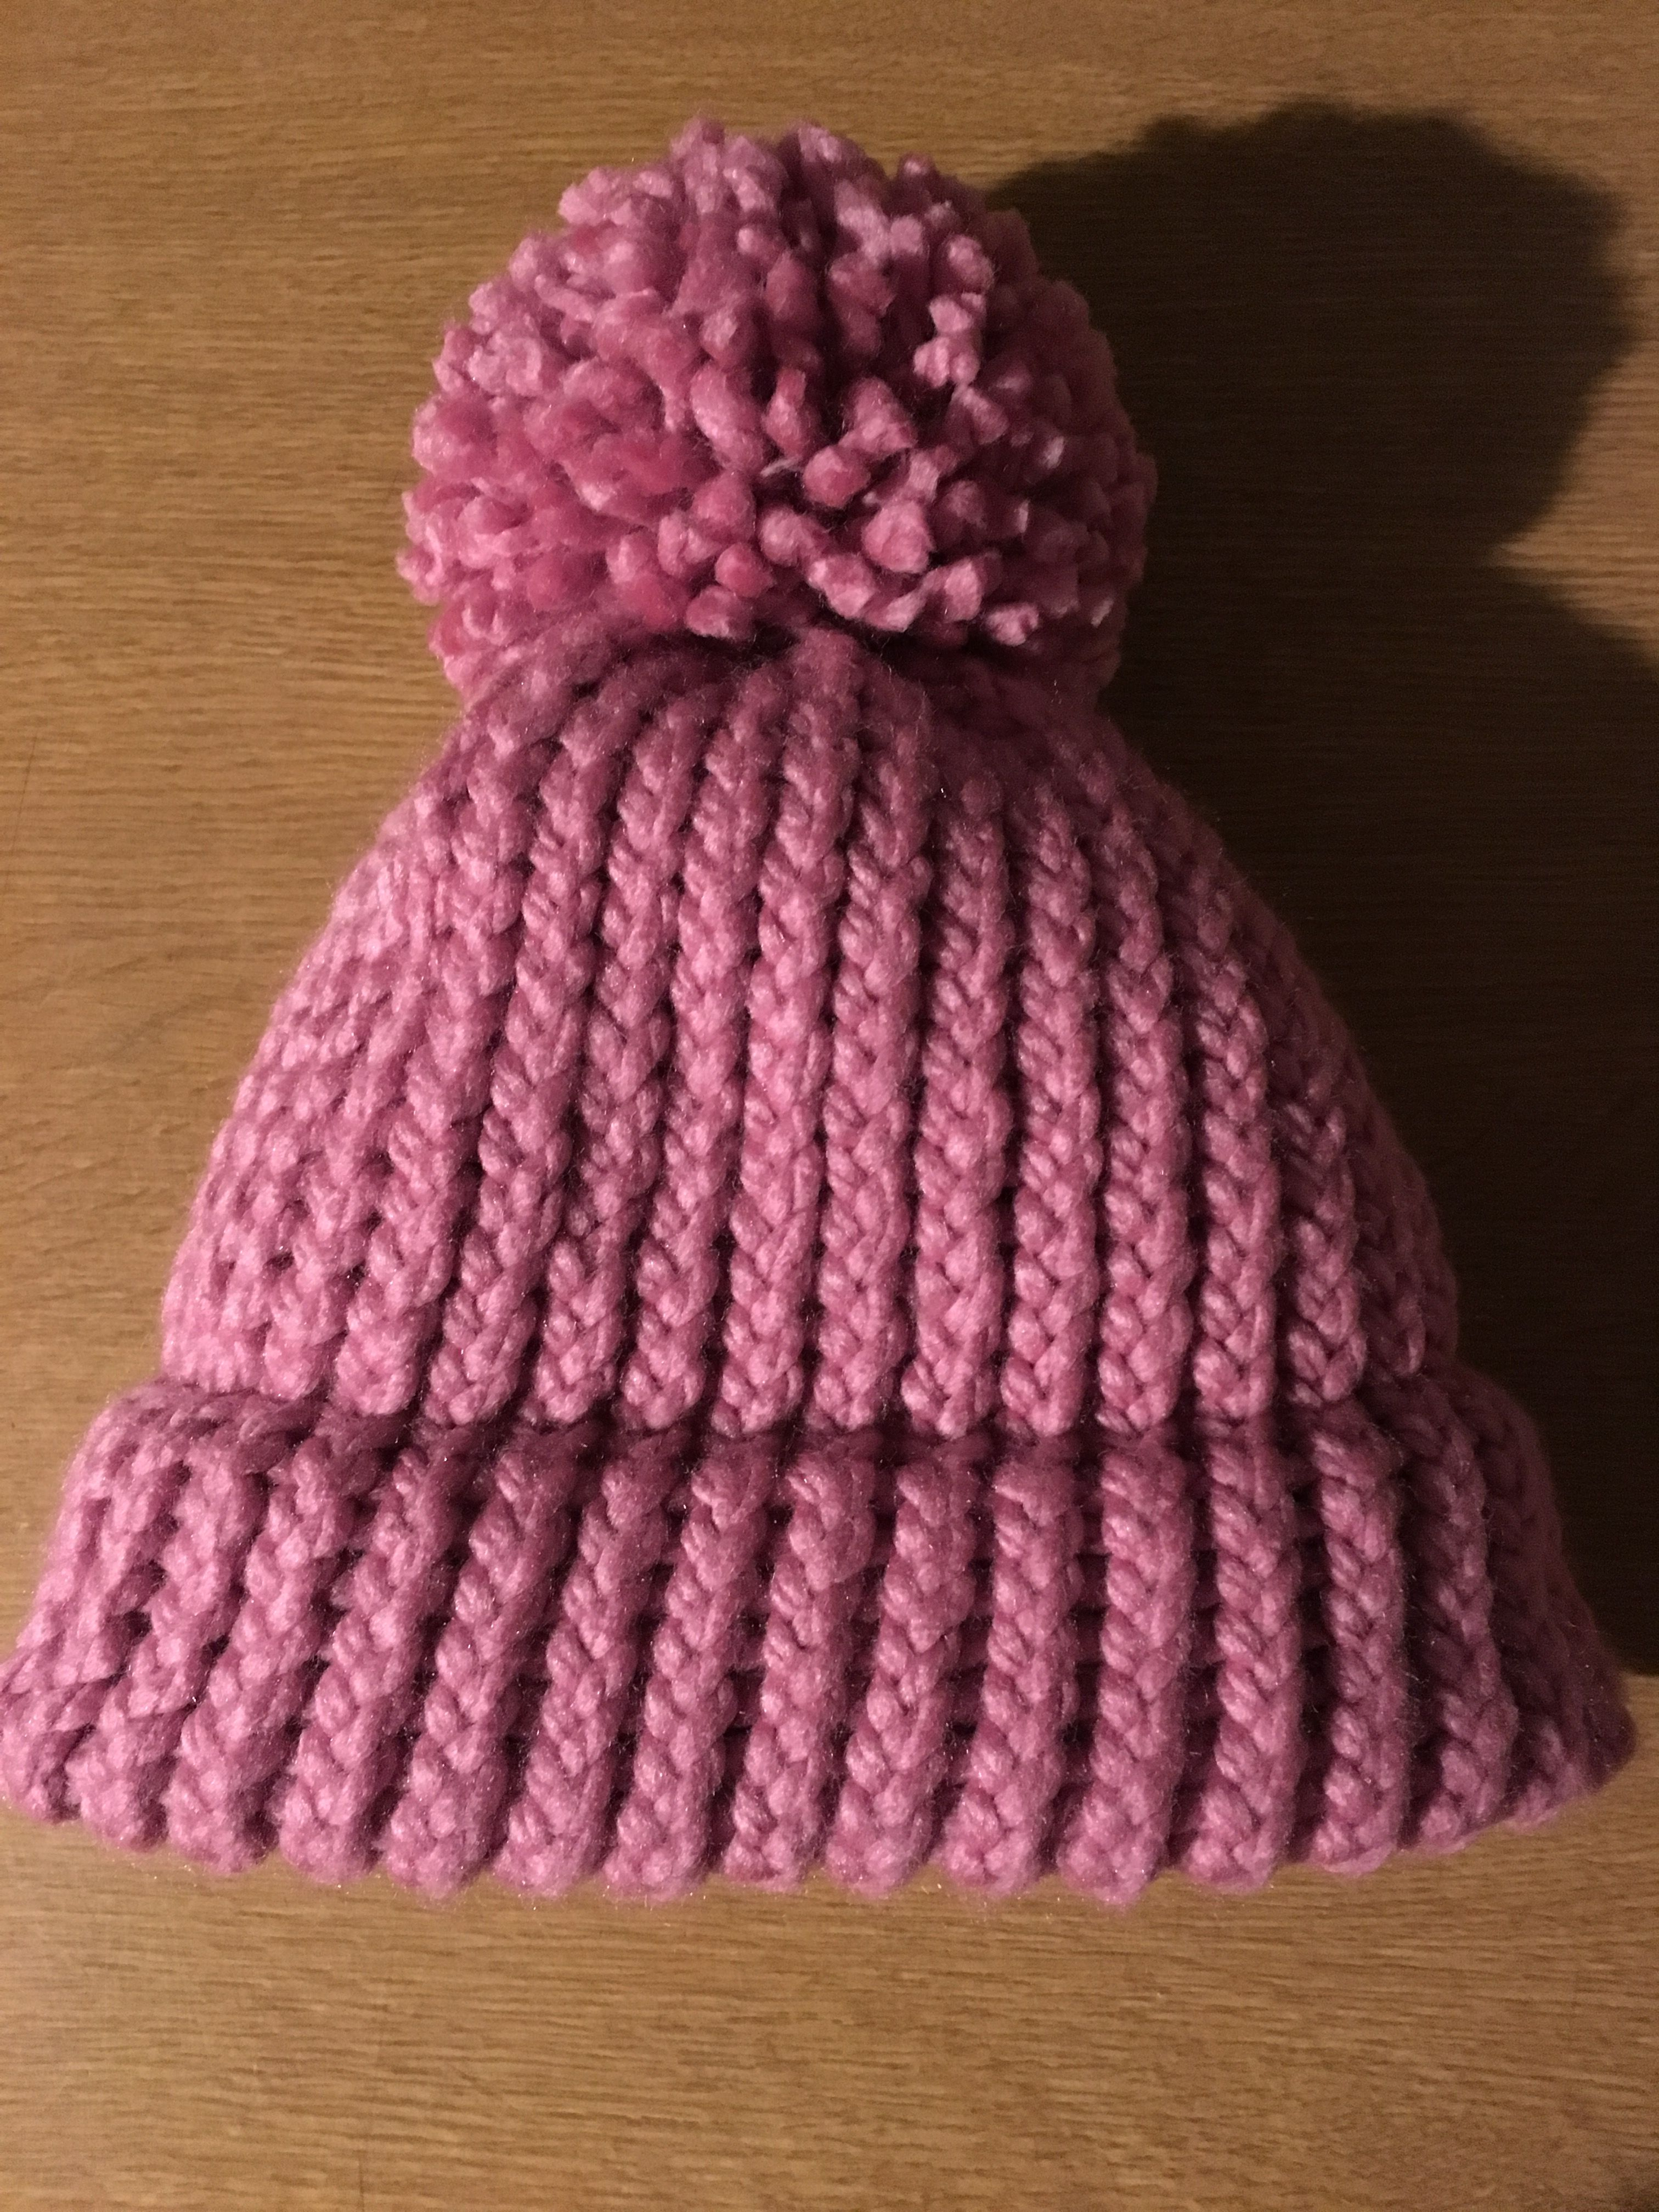 Loom knitted bobble hat | Loom knitting projects, Loom ...